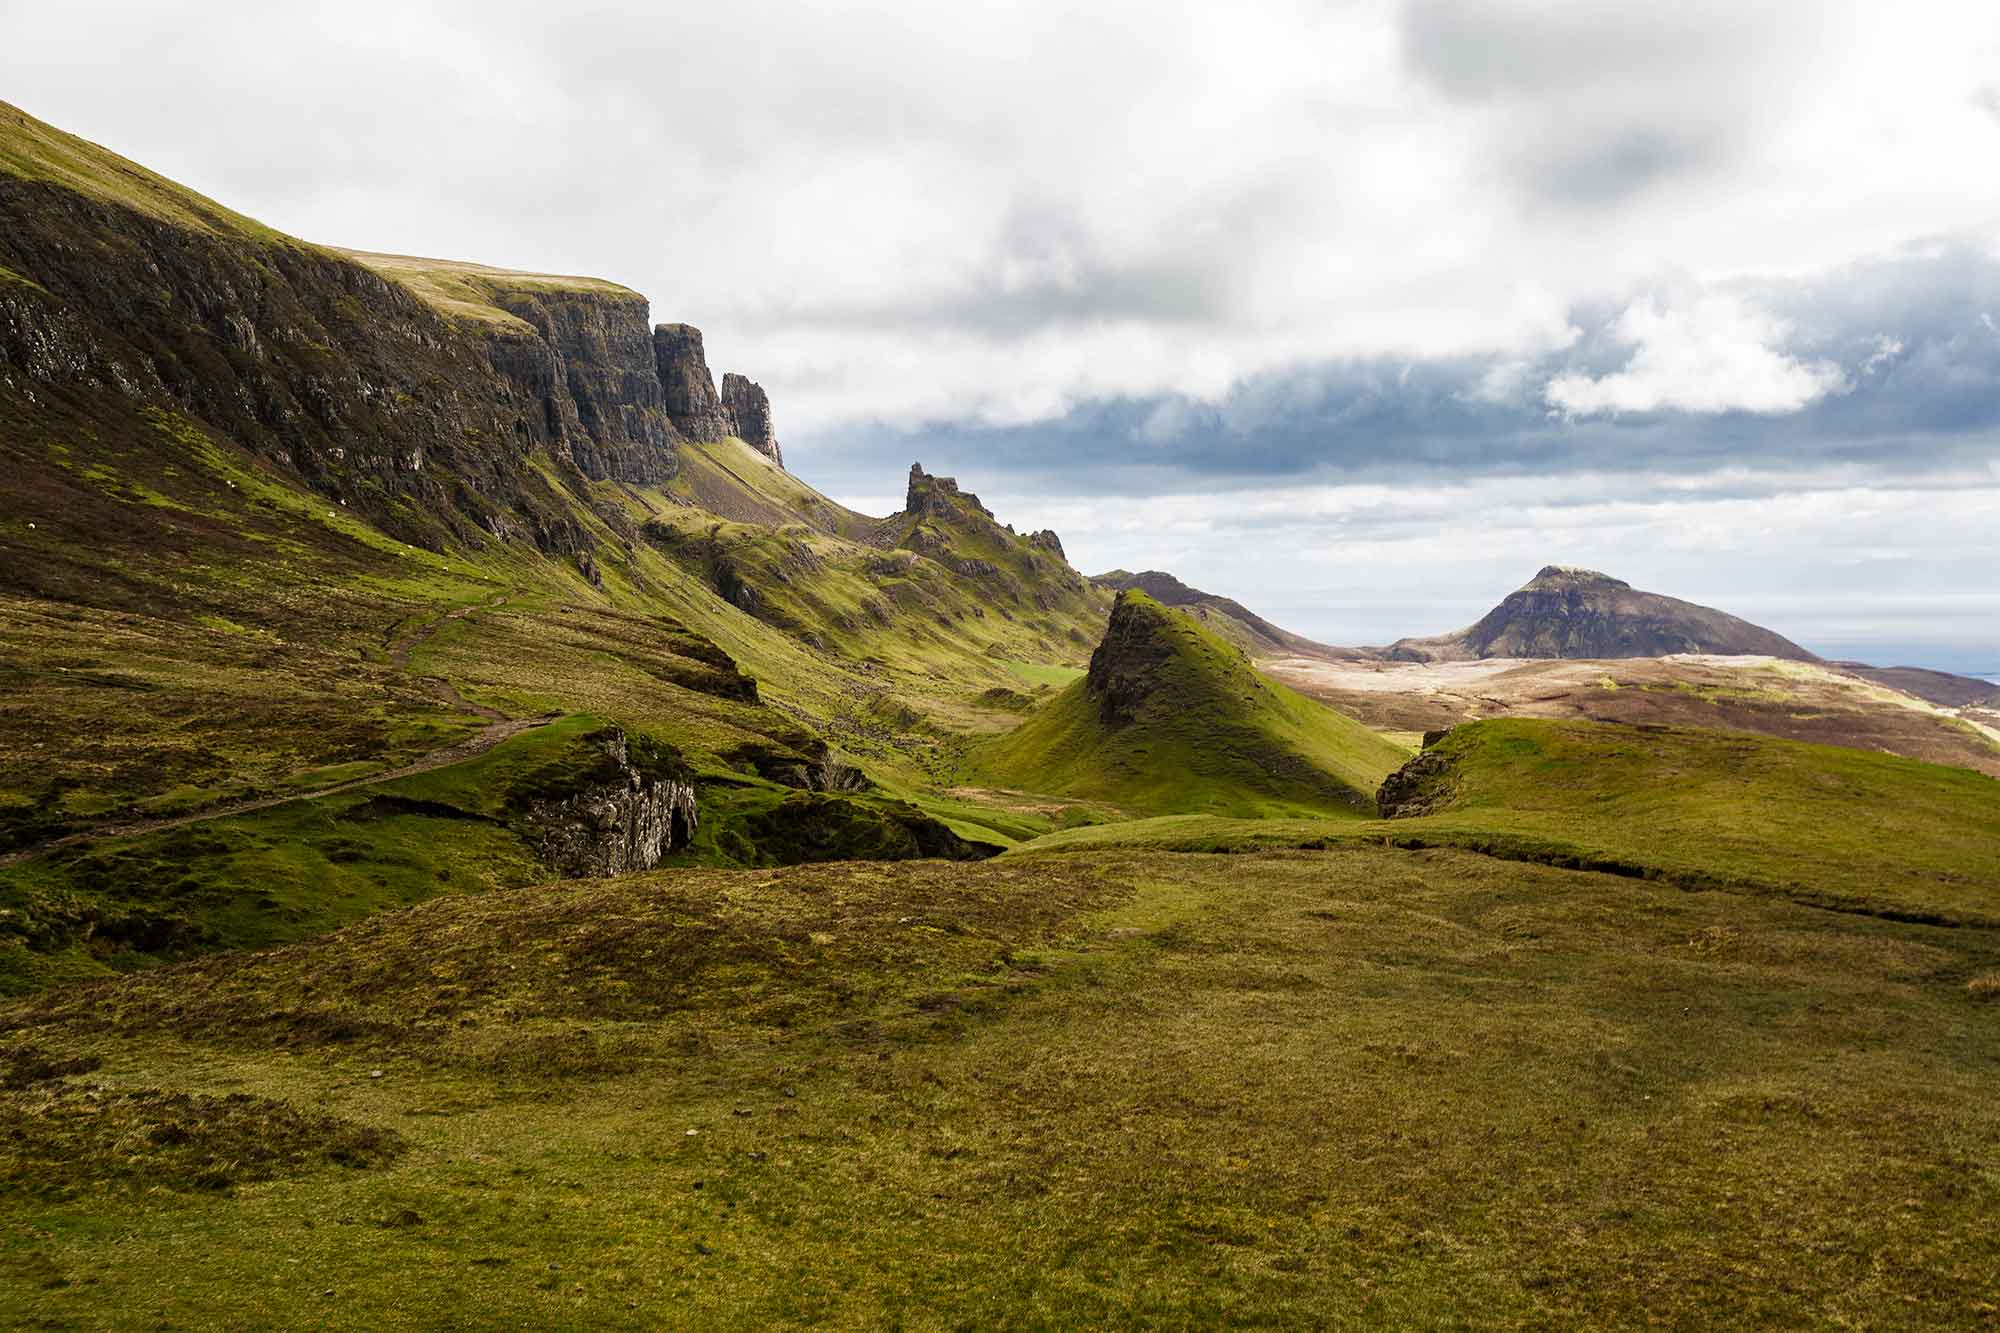 The landscape while hiking the Quiraing. © ULLI MAIER & NISA MAIER